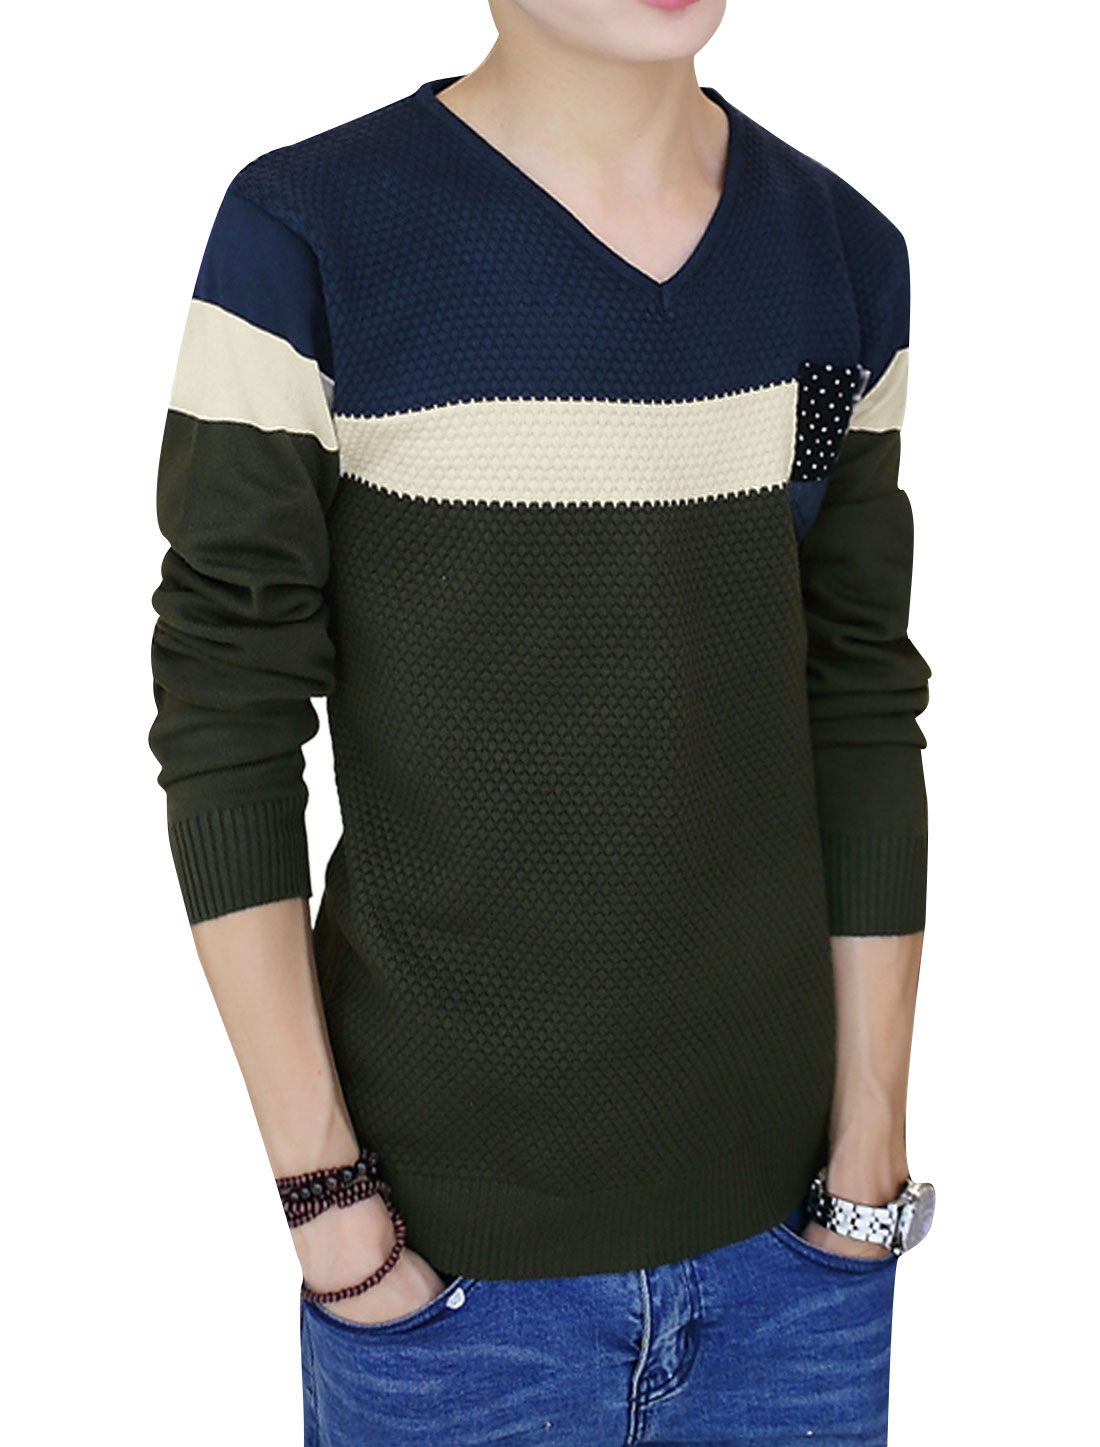 Men Color Block Spliced Chest Pocket Knit Shirt Beige Army Green S